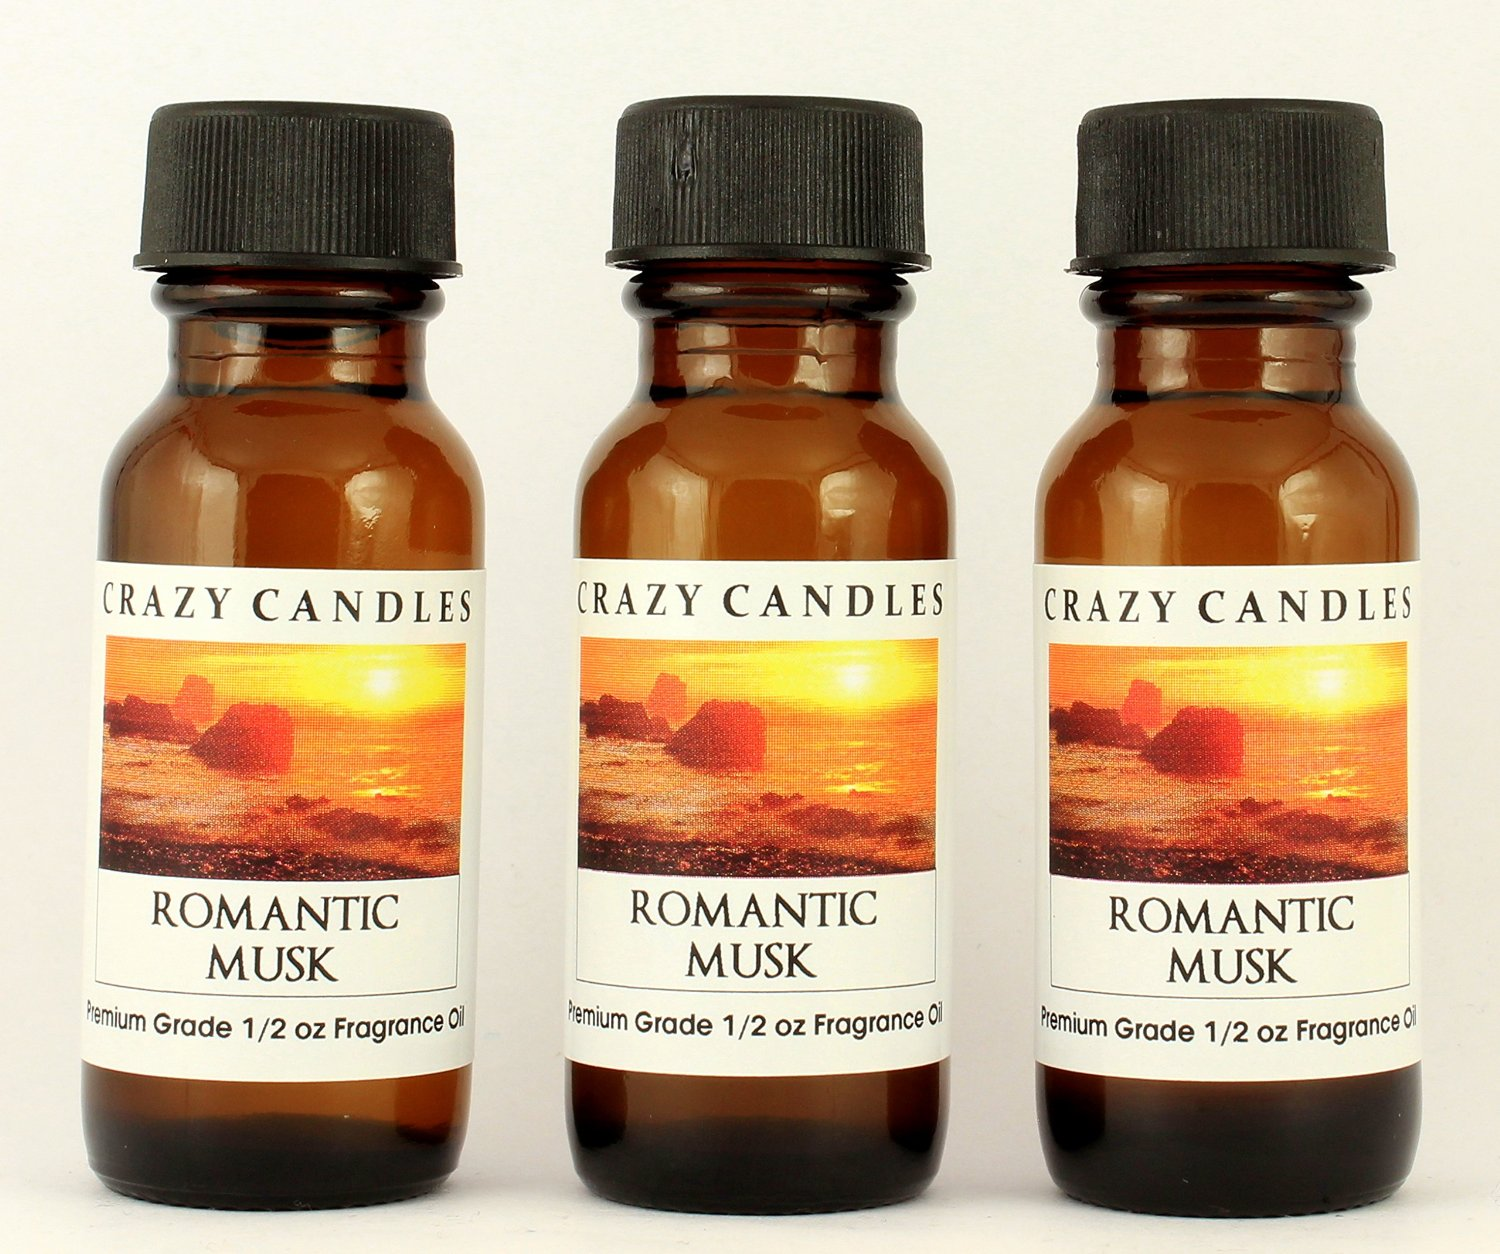 Romantic Musk (Aromatherapy) 3 Bottles 1/2 Fl Oz Each (15ml) Premium Grade Scented Fragrance Oil Crazy Candles (Very Wearable Scent, Excellent with Bath Products, Potpourri and Candles)